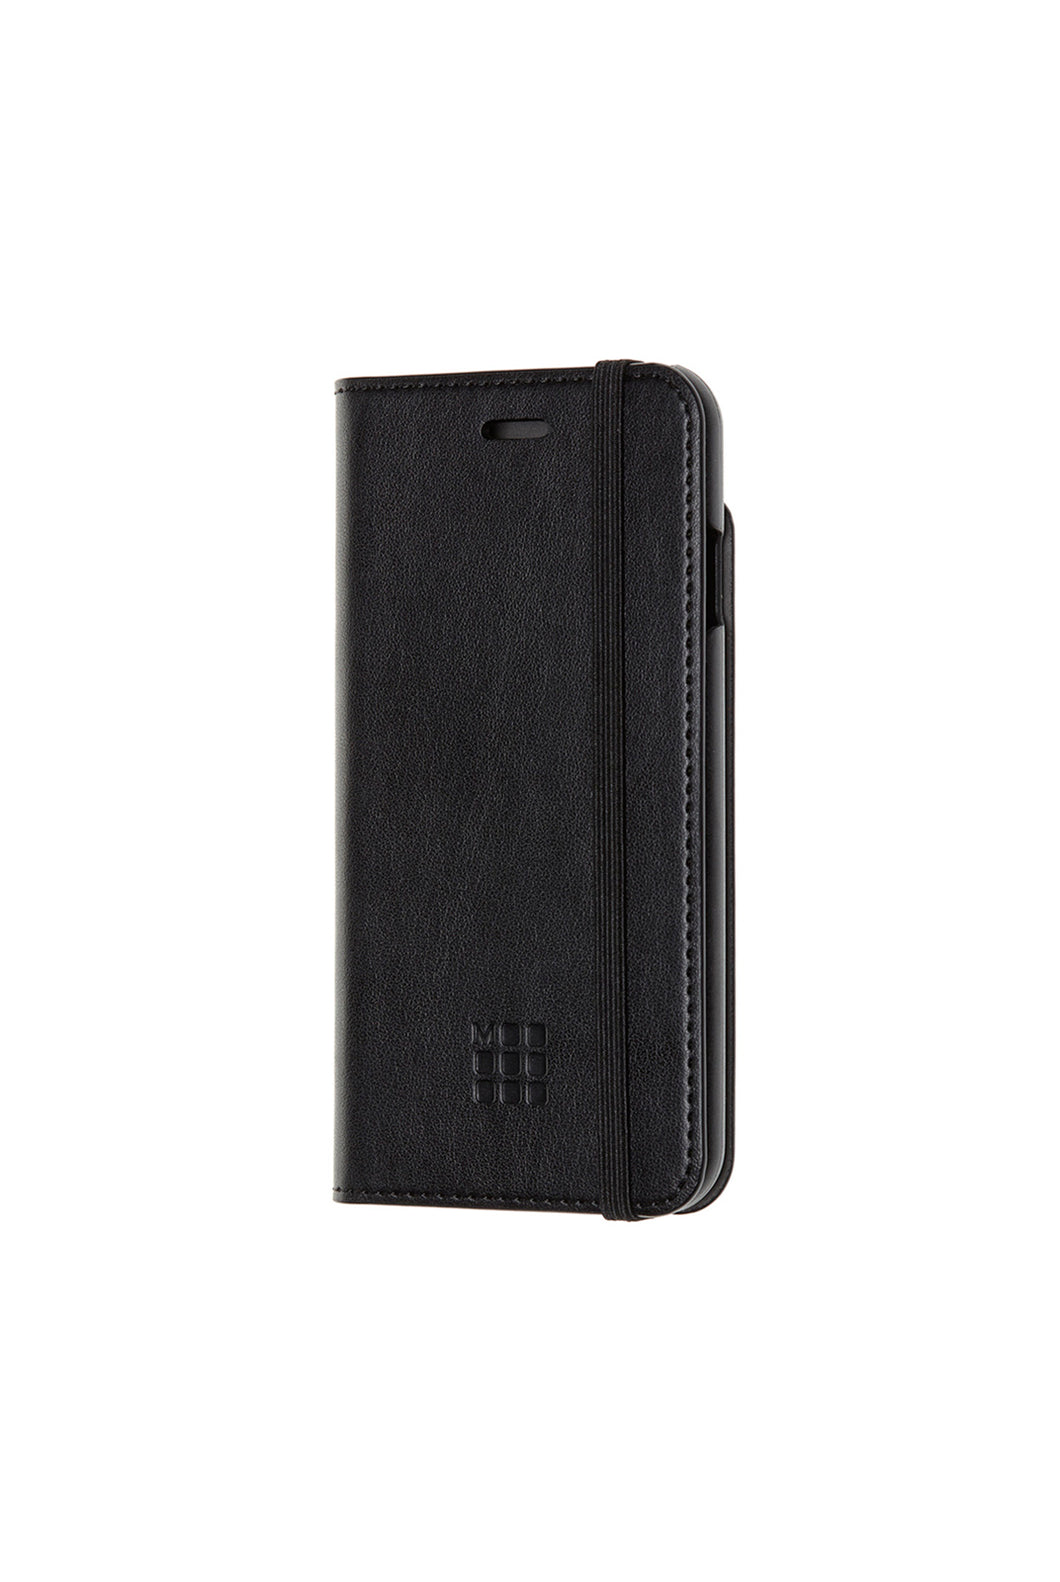 Moleskine - Reading Booktype Samsung Galaxy S9+ Case - Black